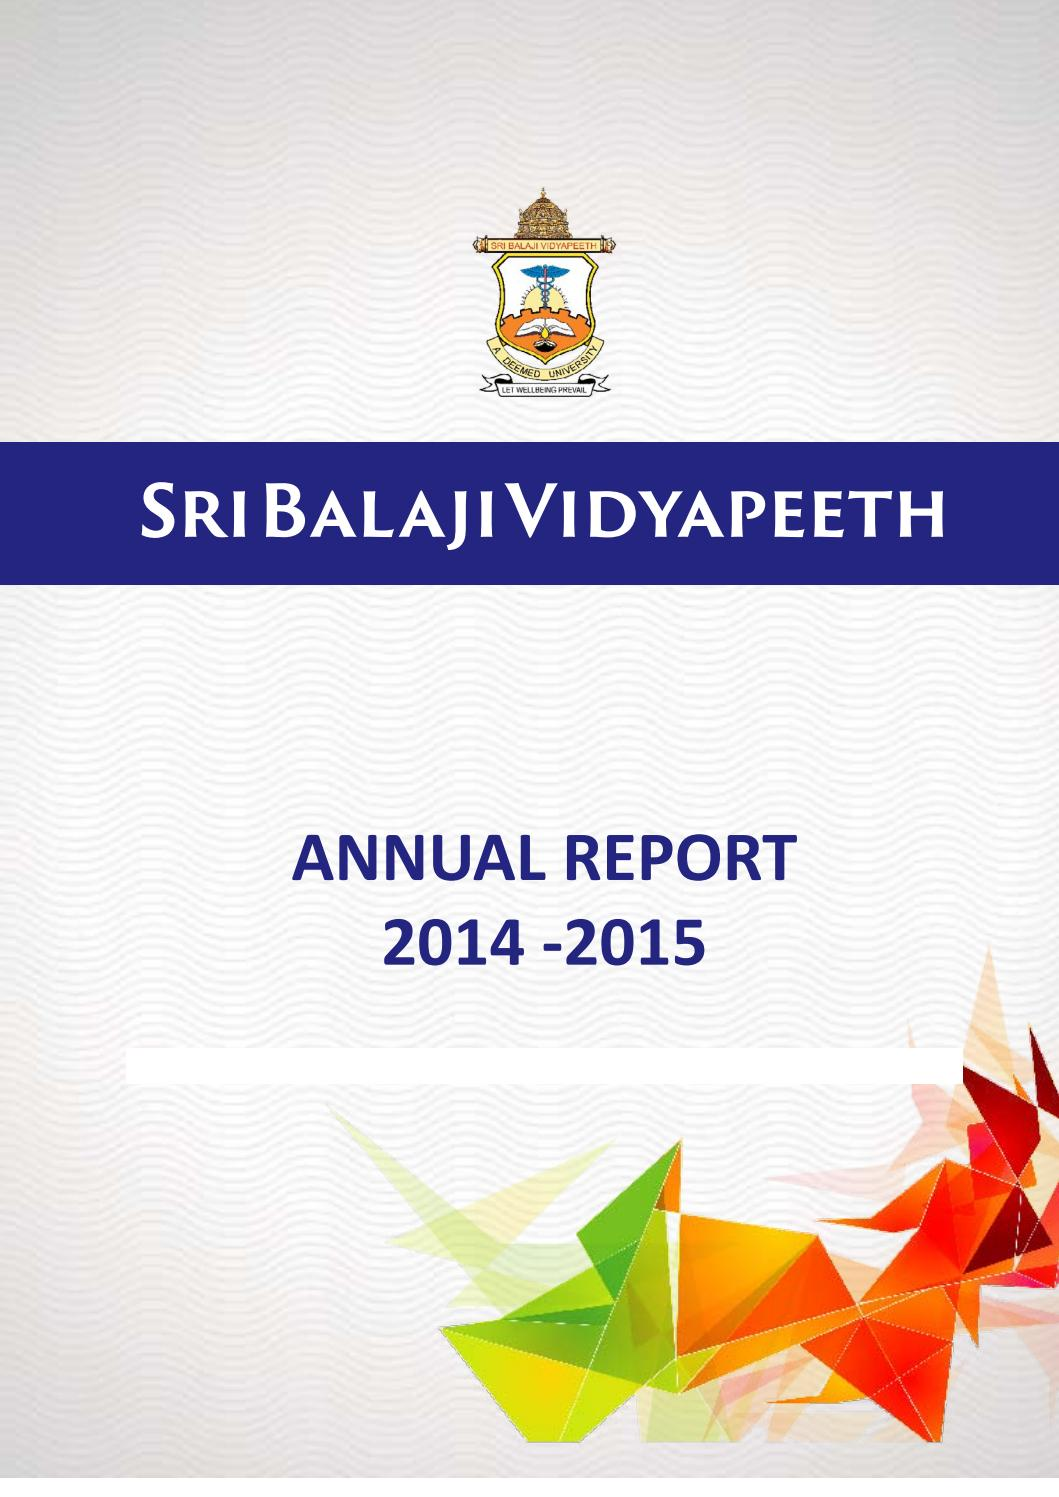 SBV Annual Report 2013-14 by Dept of Medical Informatics - issuu